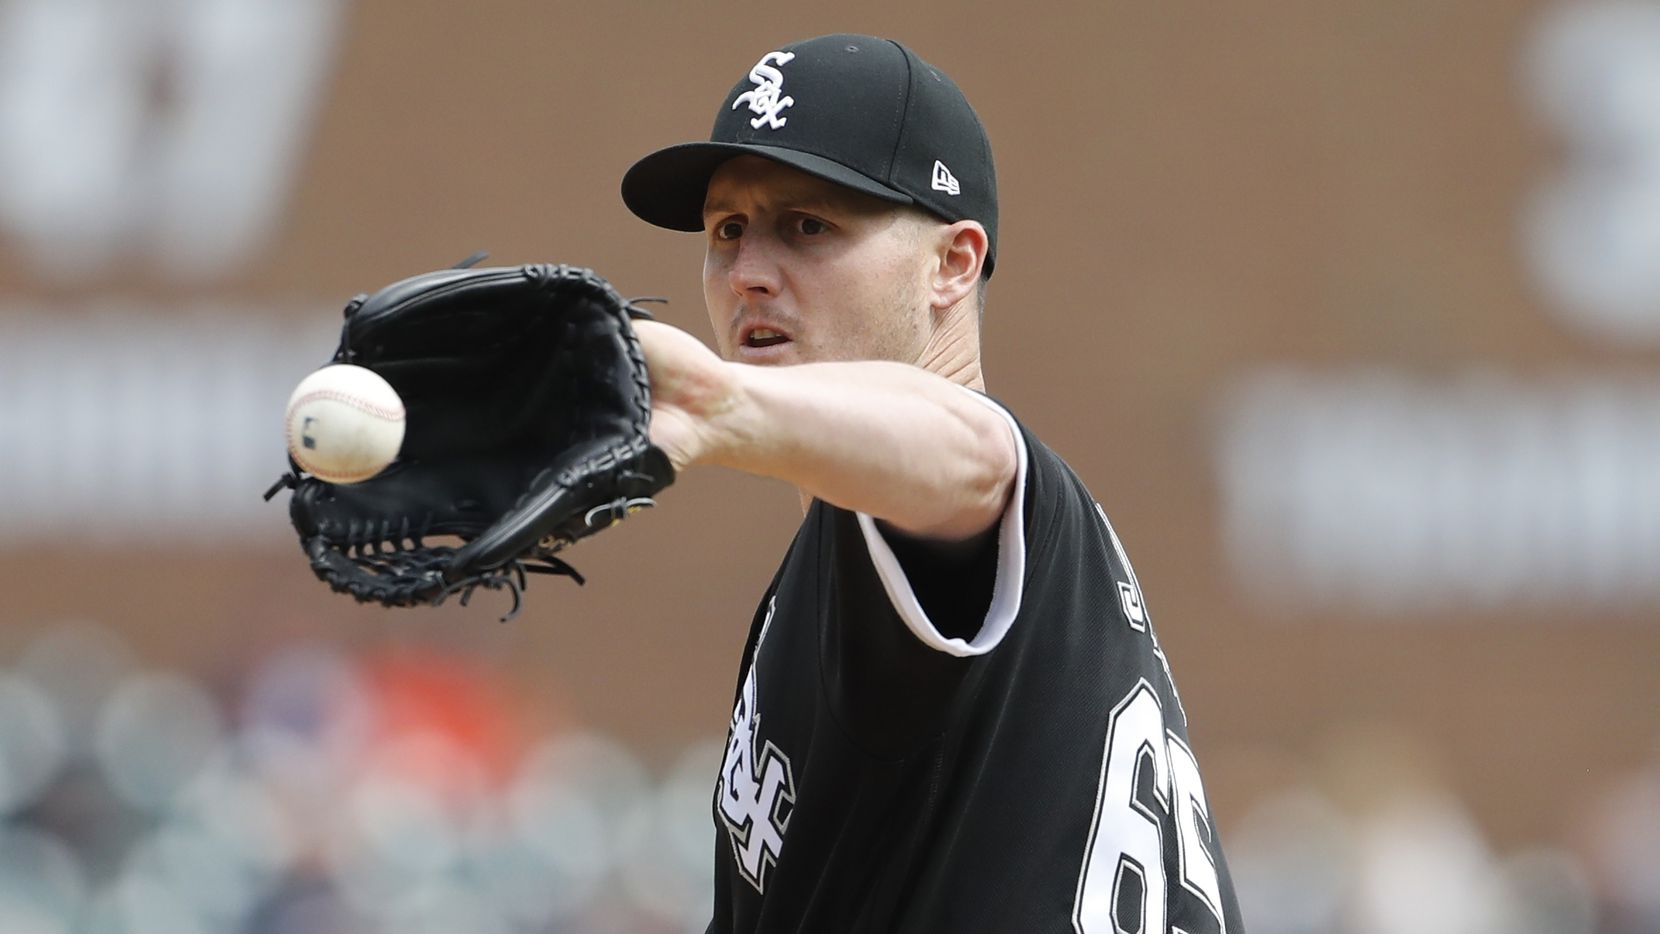 Rangers acquire international slot money from White Sox to